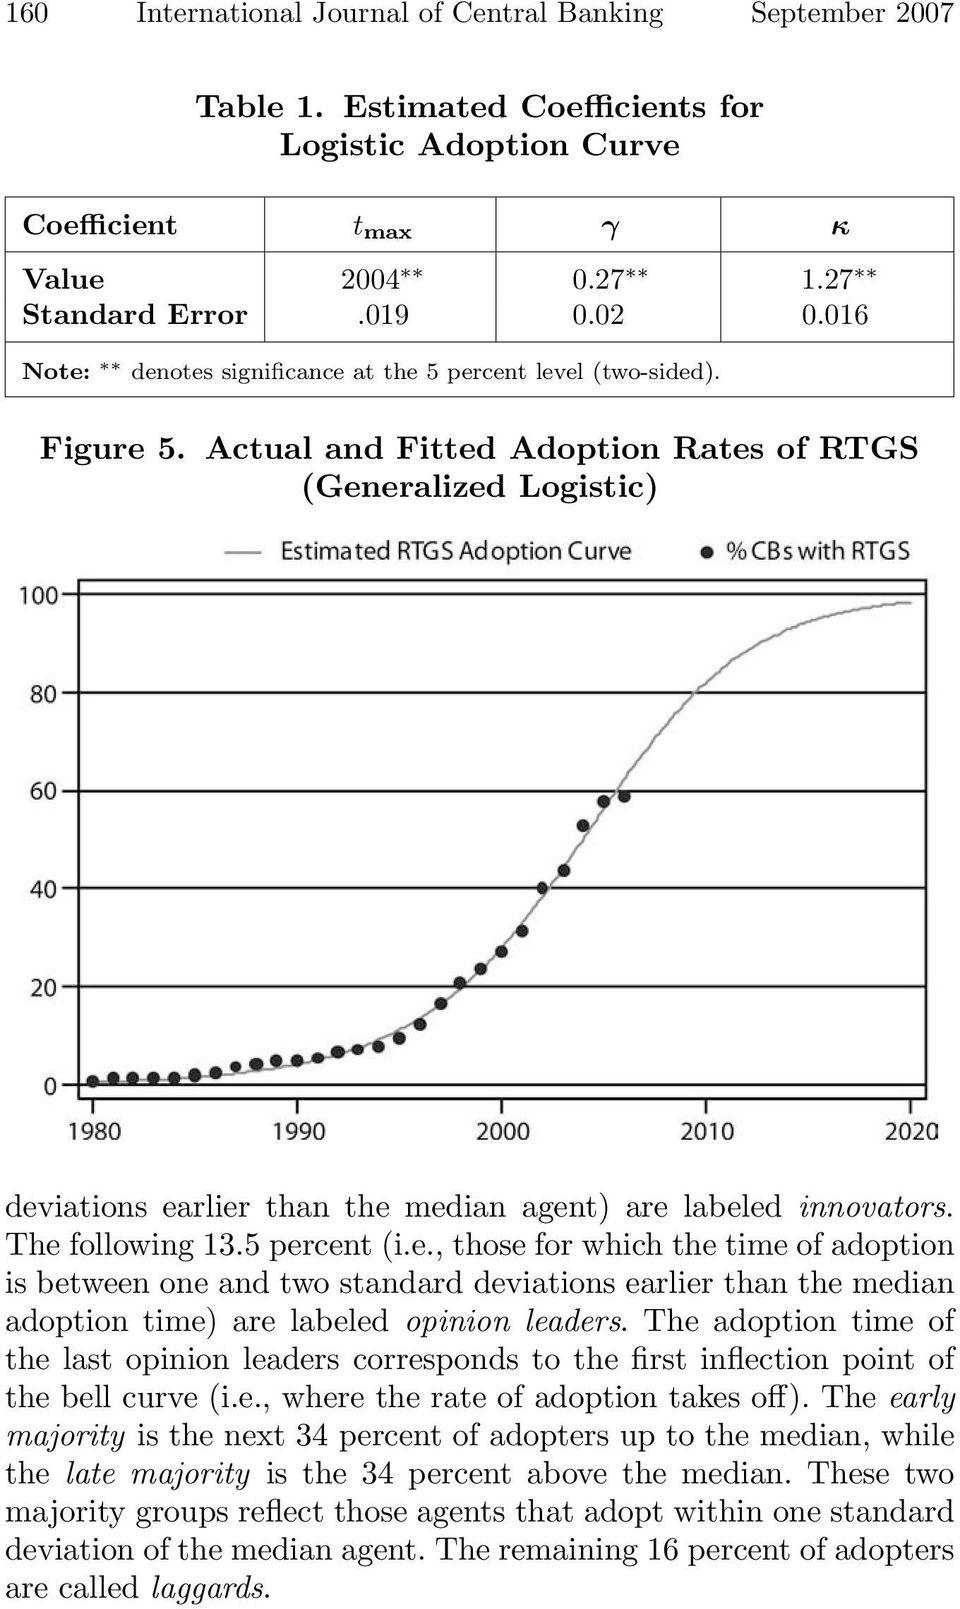 Actual and Fitted Adoption Rates of RTGS (Generalized Logistic) deviations earlier than the median agent) are labeled innovators. The following 13.5 percent (i.e., those for which the time of adoption is between one and two standard deviations earlier than the median adoption time) are labeled opinion leaders.